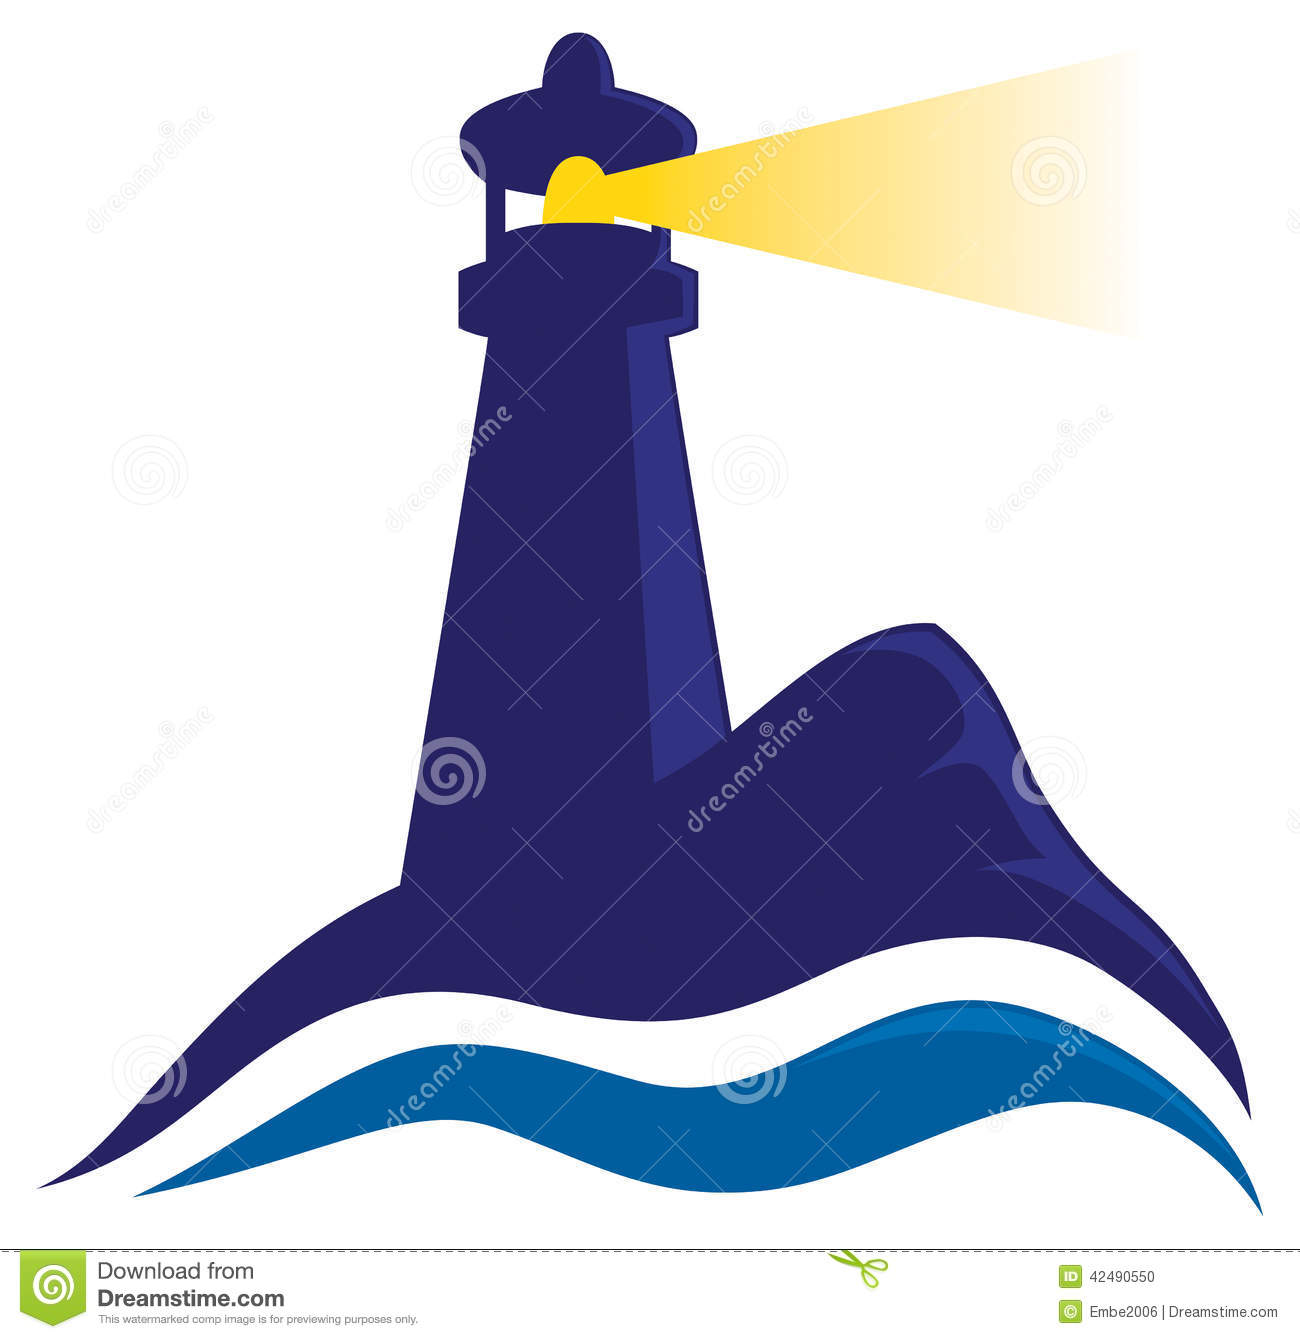 Can Light house tgp something is